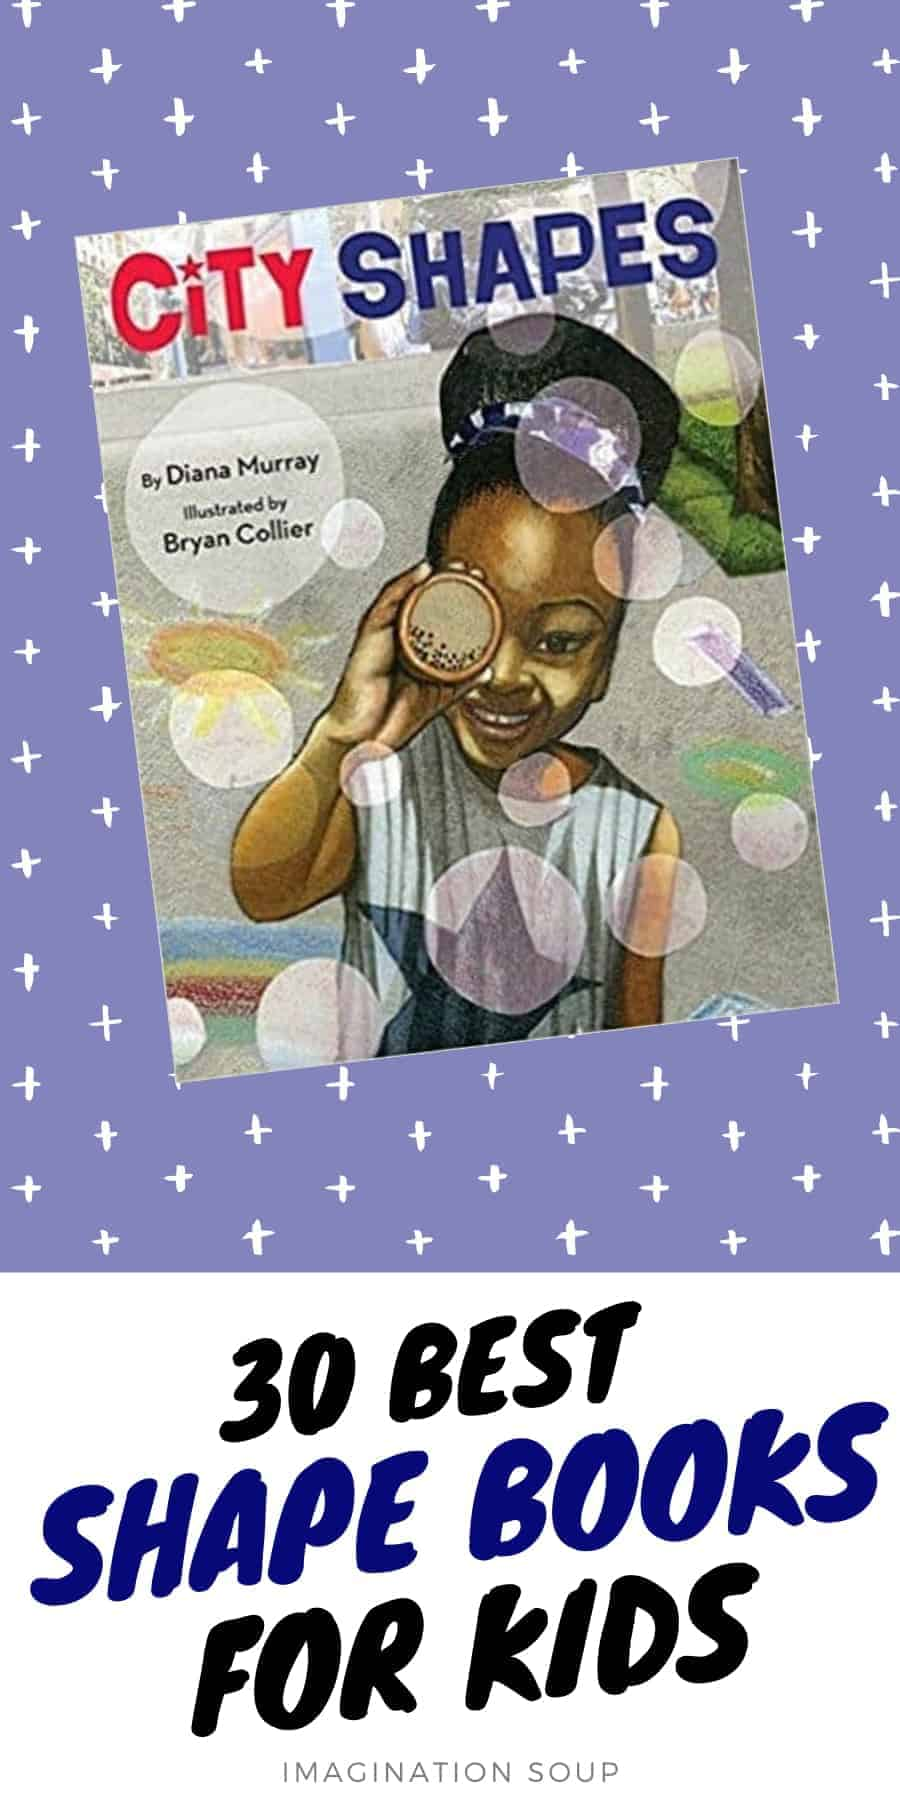 30 best shape books for kids